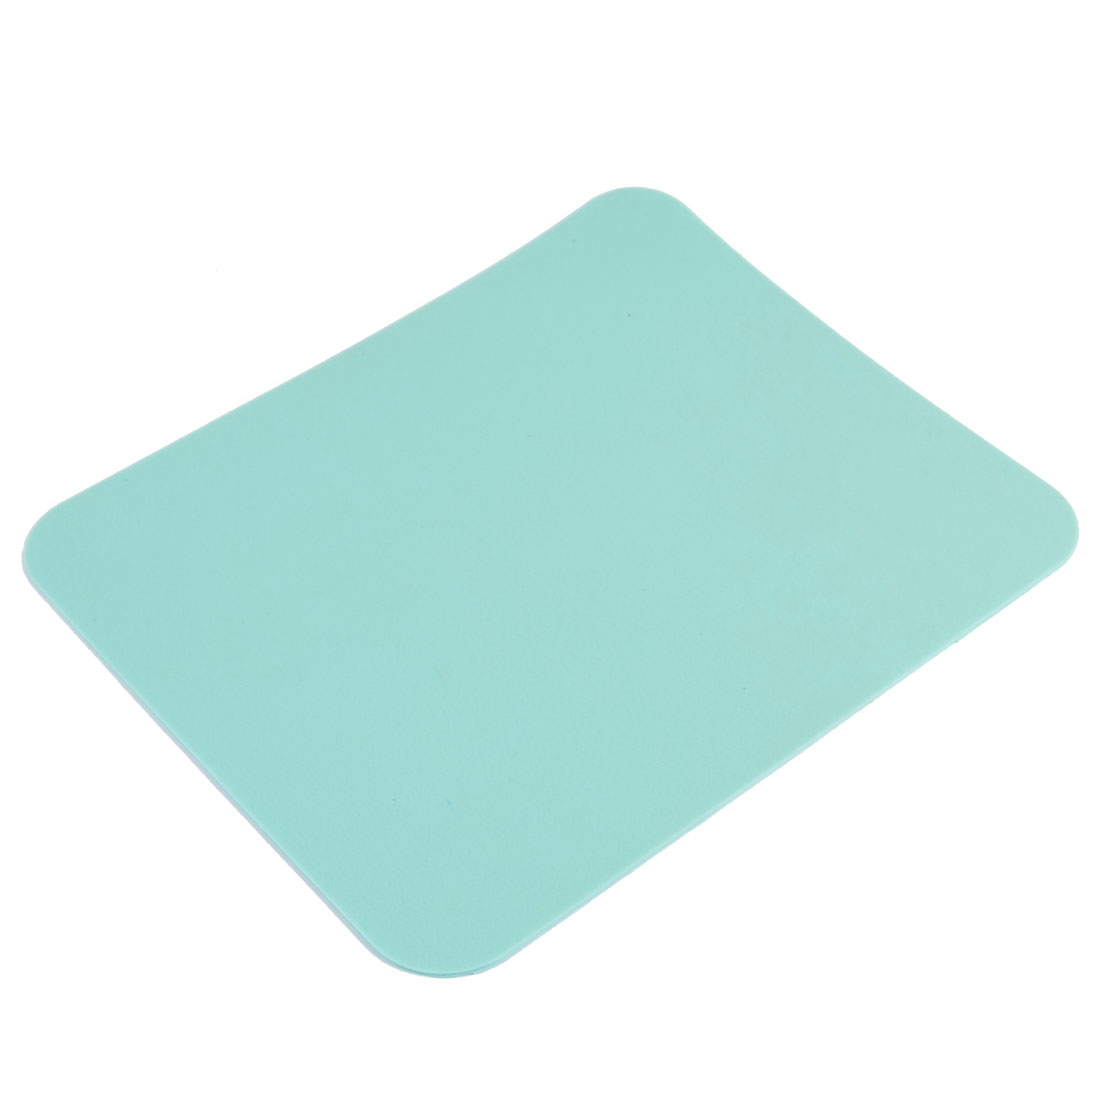 Notebook Desktop Computer 1mm Thickness Optical Mouse Pad Baby Blue for Gaming